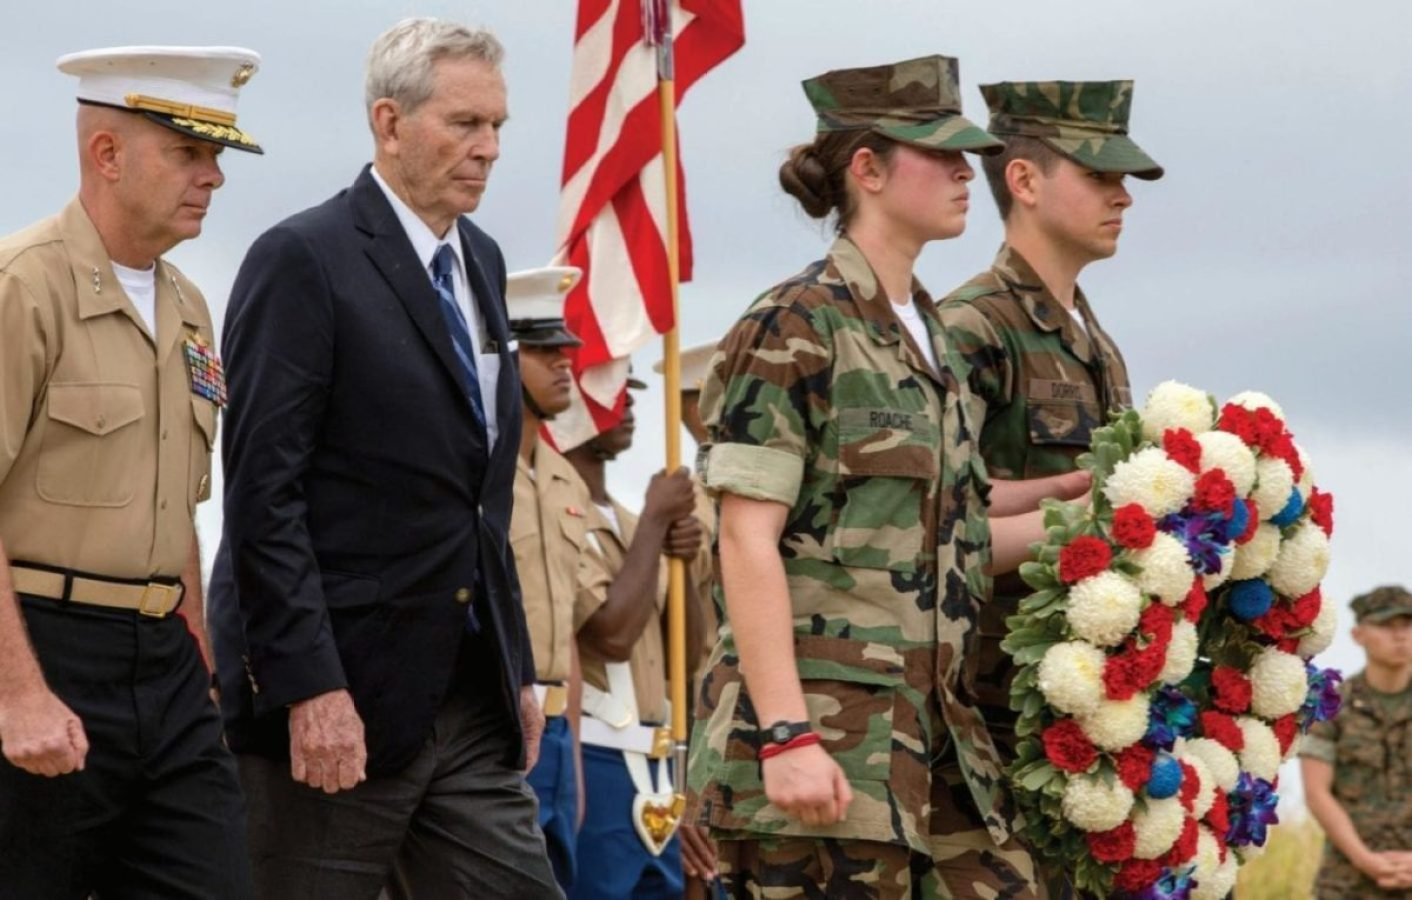 Young Marines approach an Iwo Jima memorial to participate in a wreath-laying presentation as part of the 72nd Reunion of Honor ceremony, March 25, 2017. This event presented the opportunity for the U.S. and Japanese people to mutually remember and honor thousands of service members who fought and died on the hallowed grounds of Iwo Jima. U.S. MARINE CORPS PHOTO BY LANCE CPL. BROOKE DEITERS